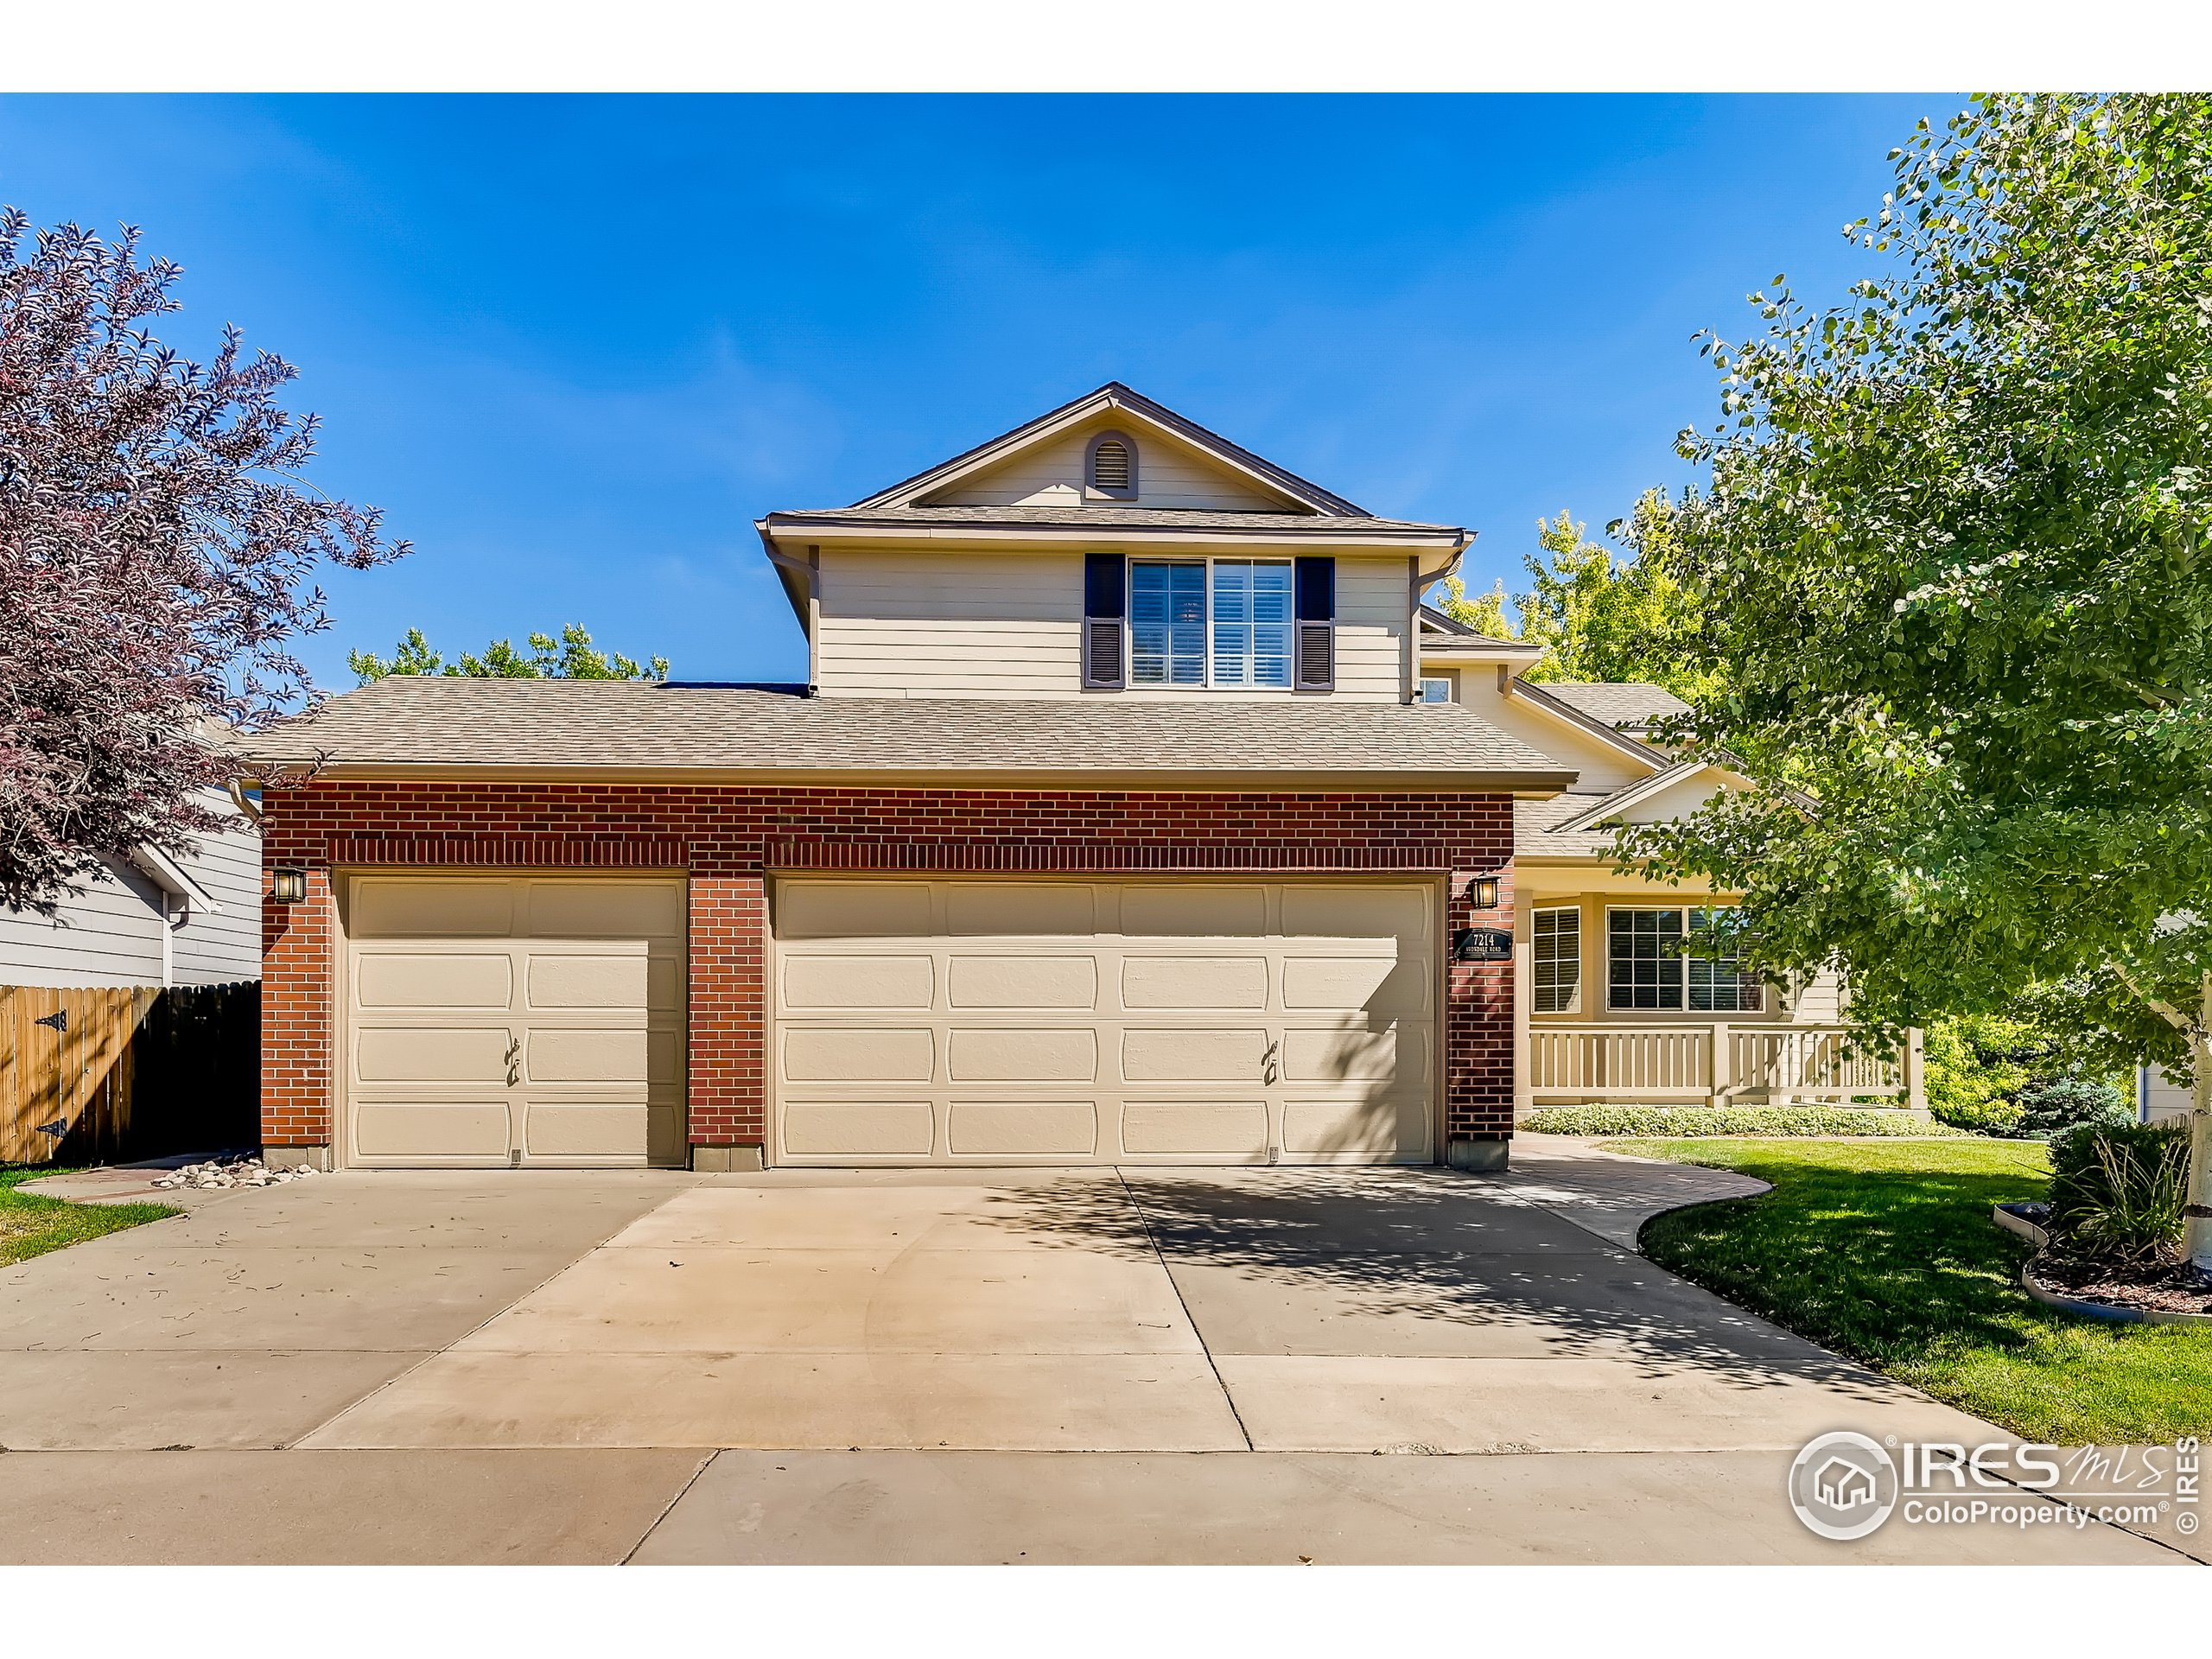 7214 Avondale Rd, Fort Collins, CO 80525